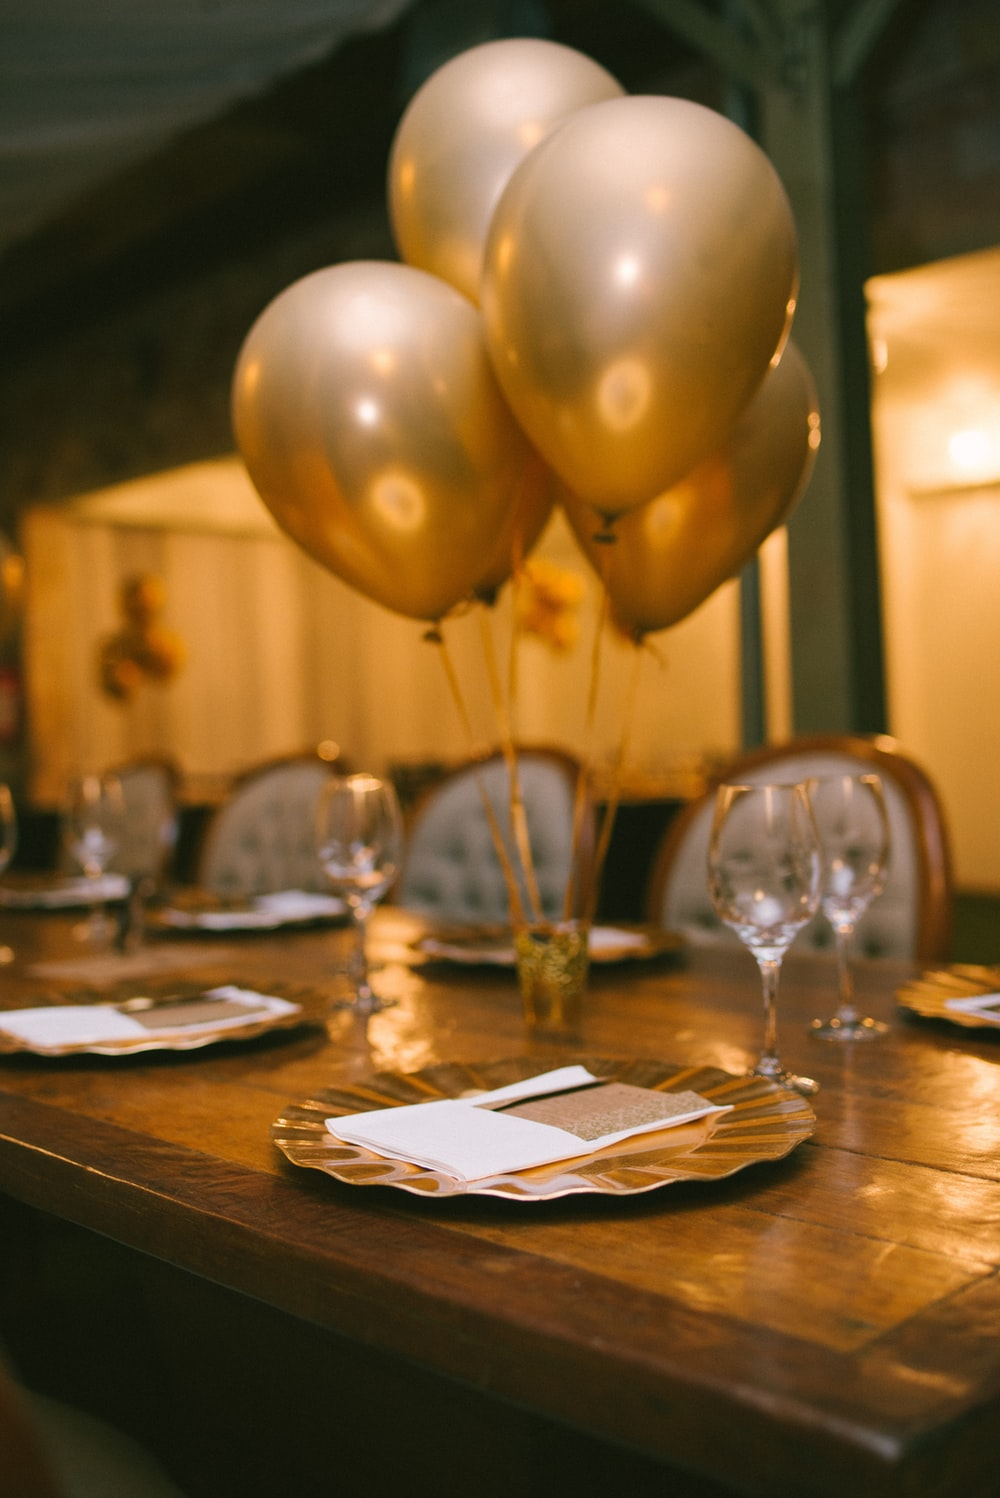 gold balloons on brown wooden table